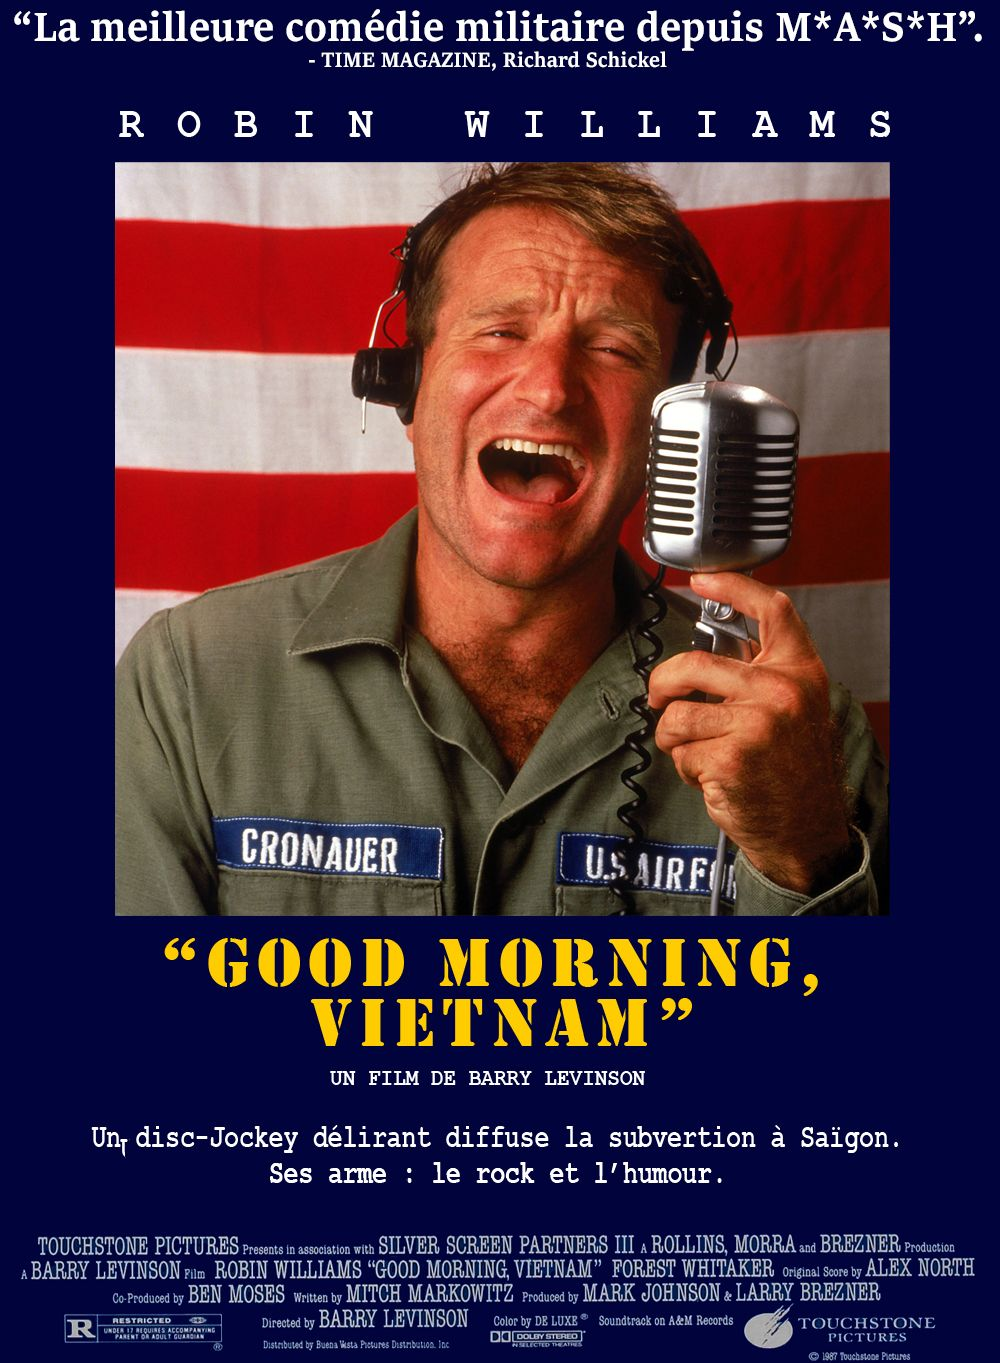 a review of the film good morning vietnam In good morning vietnam, barry levinson's exaggerated account of the dj's antics, robin williams is cronauer and finally gets the perfect vehicle to express his furious comic talent.